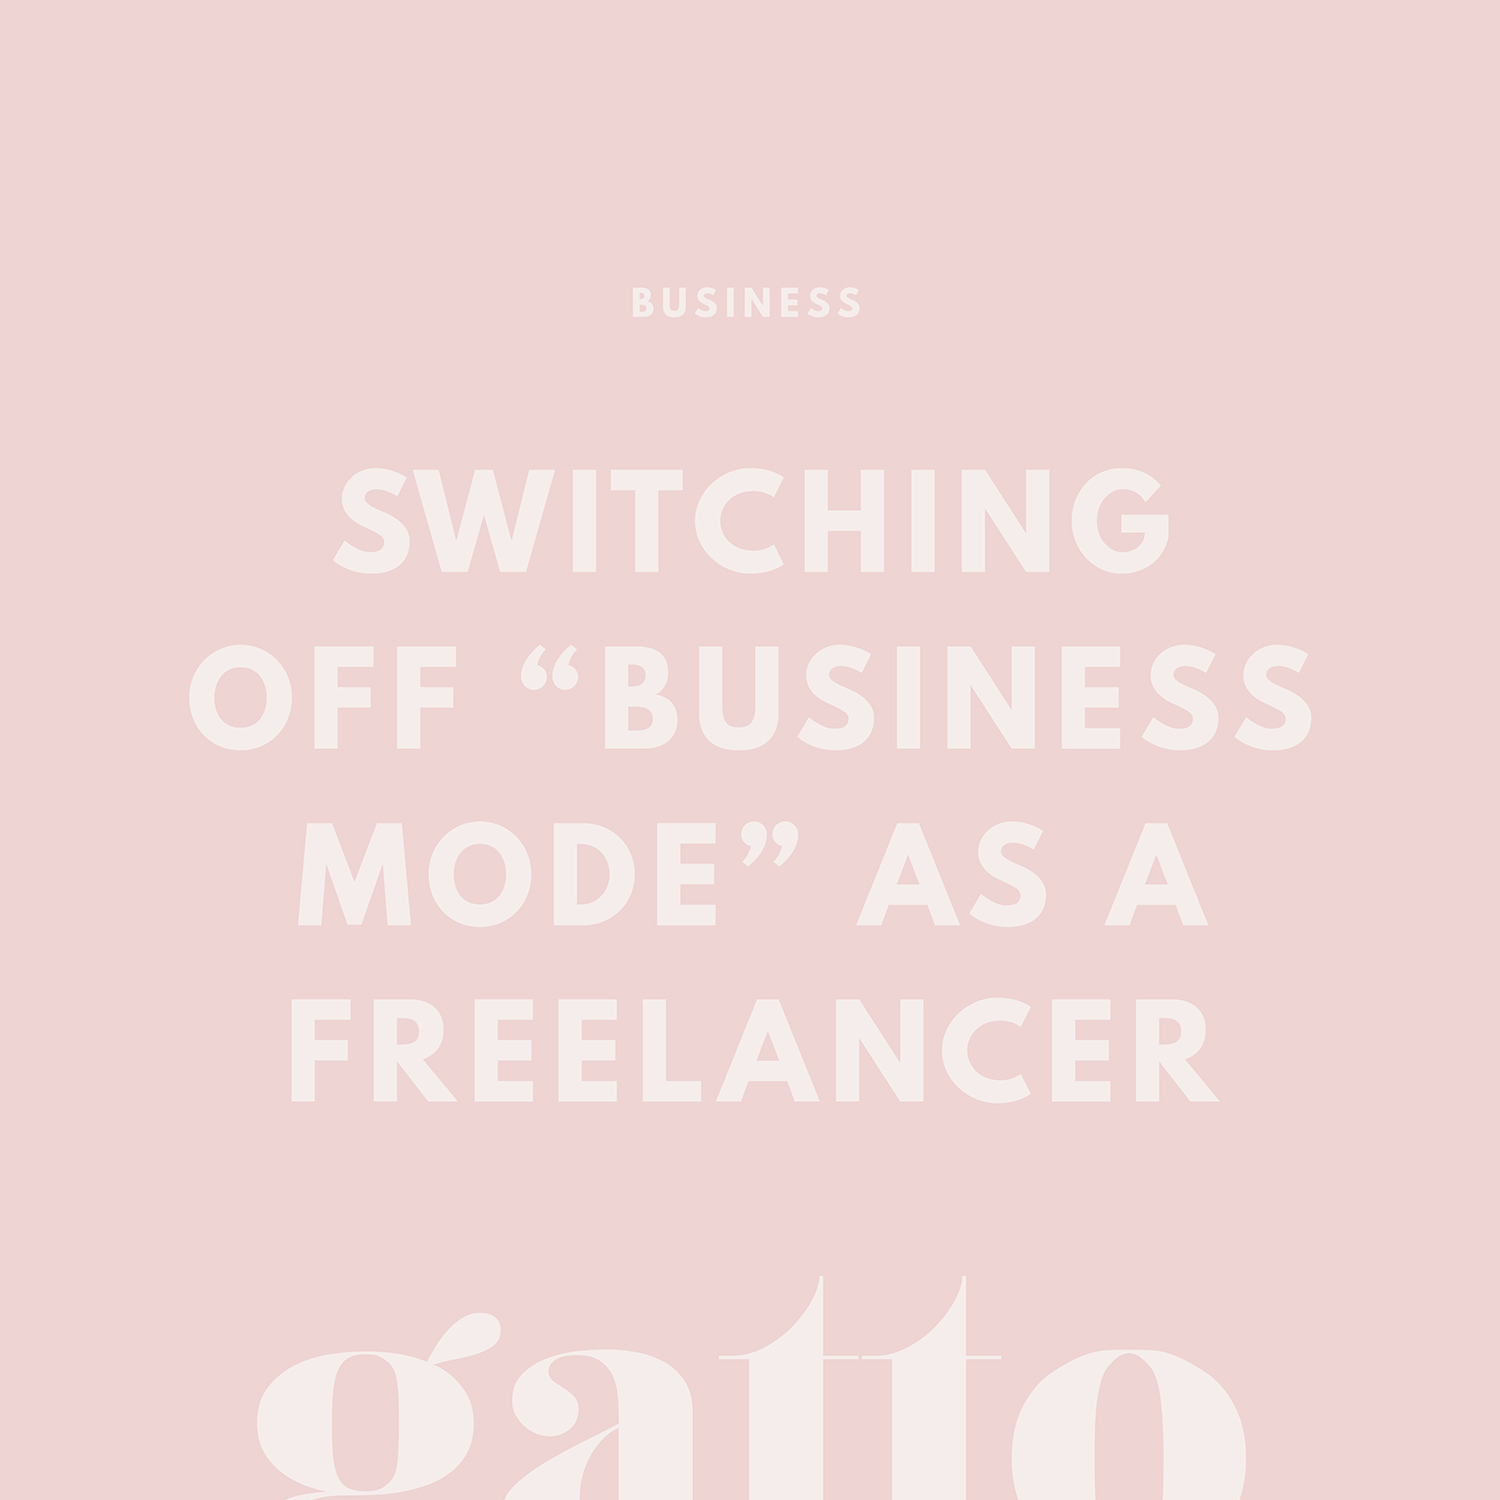 Switch off Business Mode | Freelancer Advice | Productivity | Creative Biz